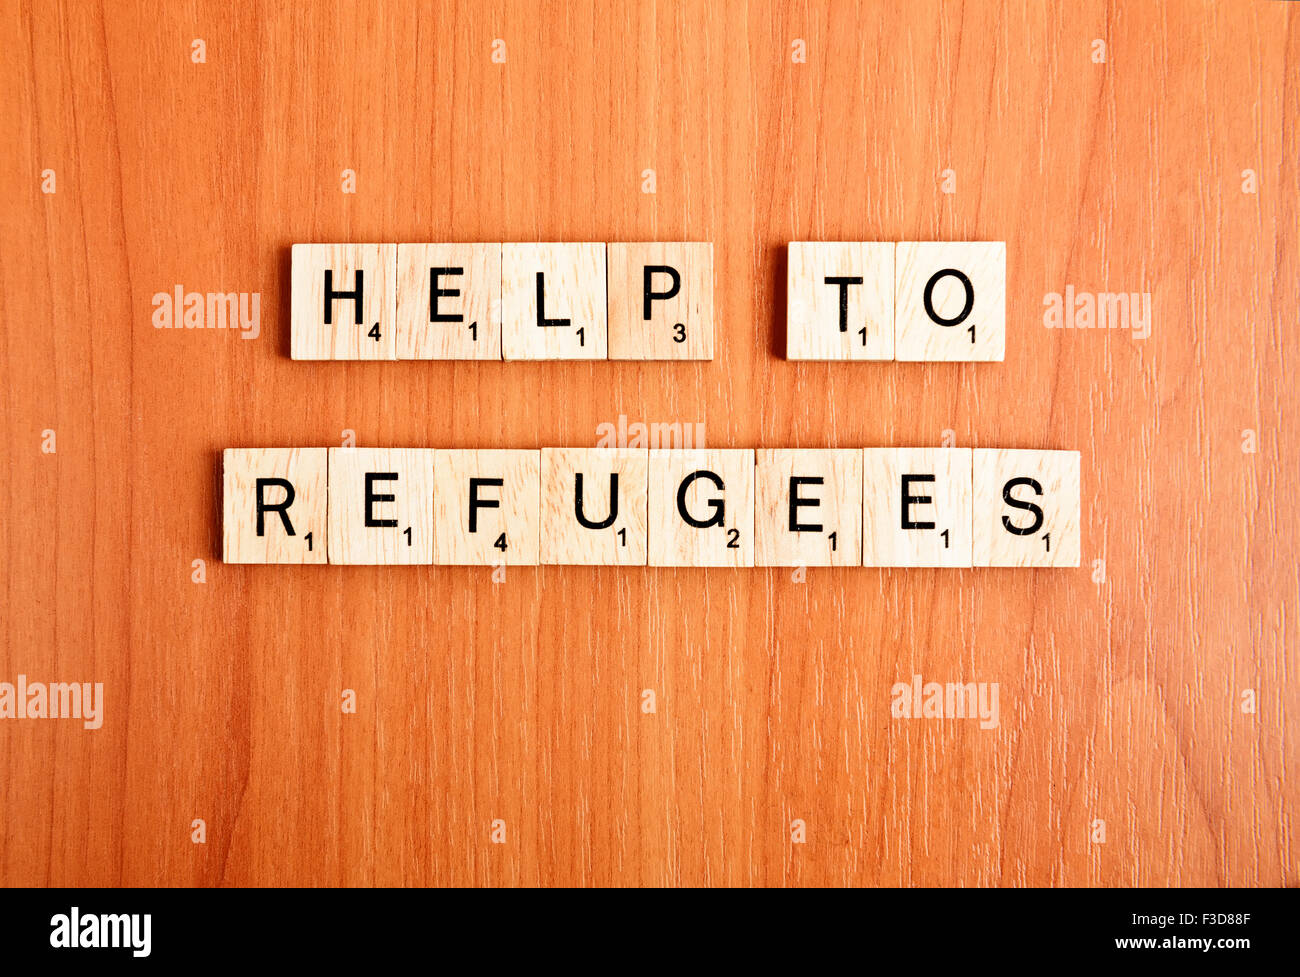 Refugees help text on wooden tiles letters - Stock Image